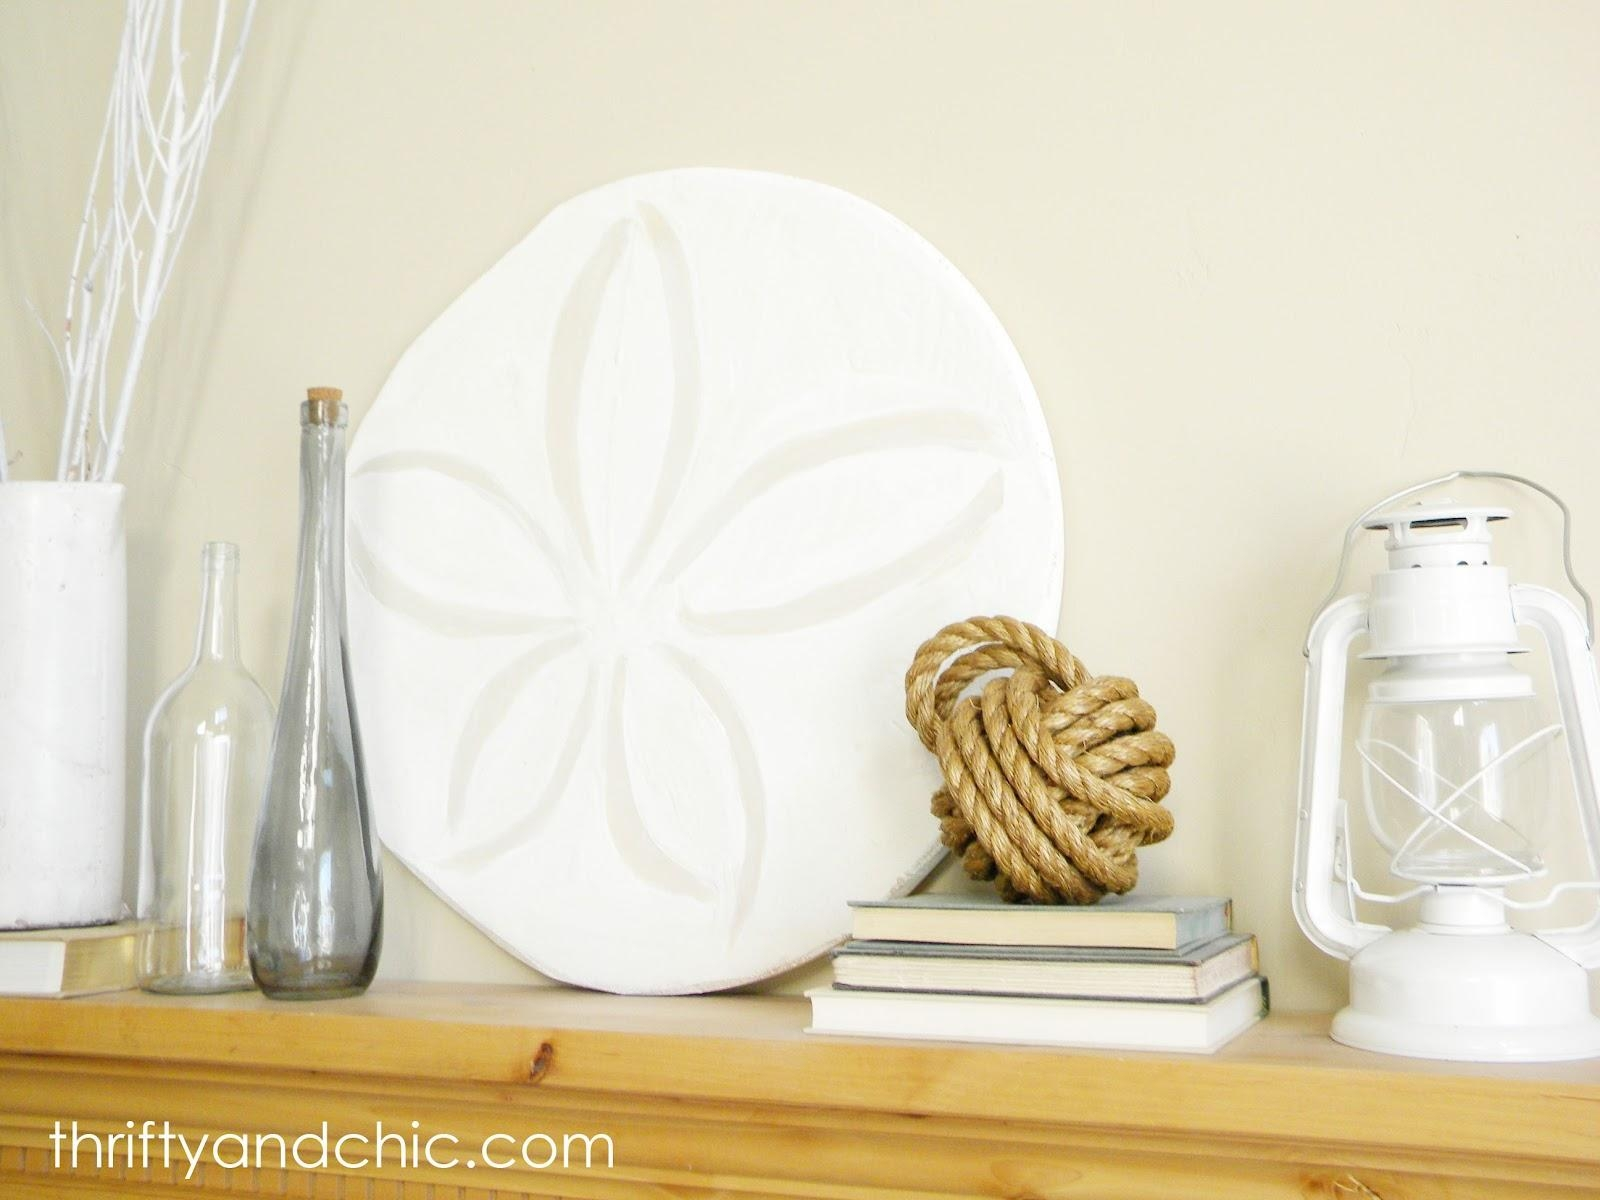 Thrifty And Chic - Diy Projects And Home Decor in Sand Dollar Wall Art